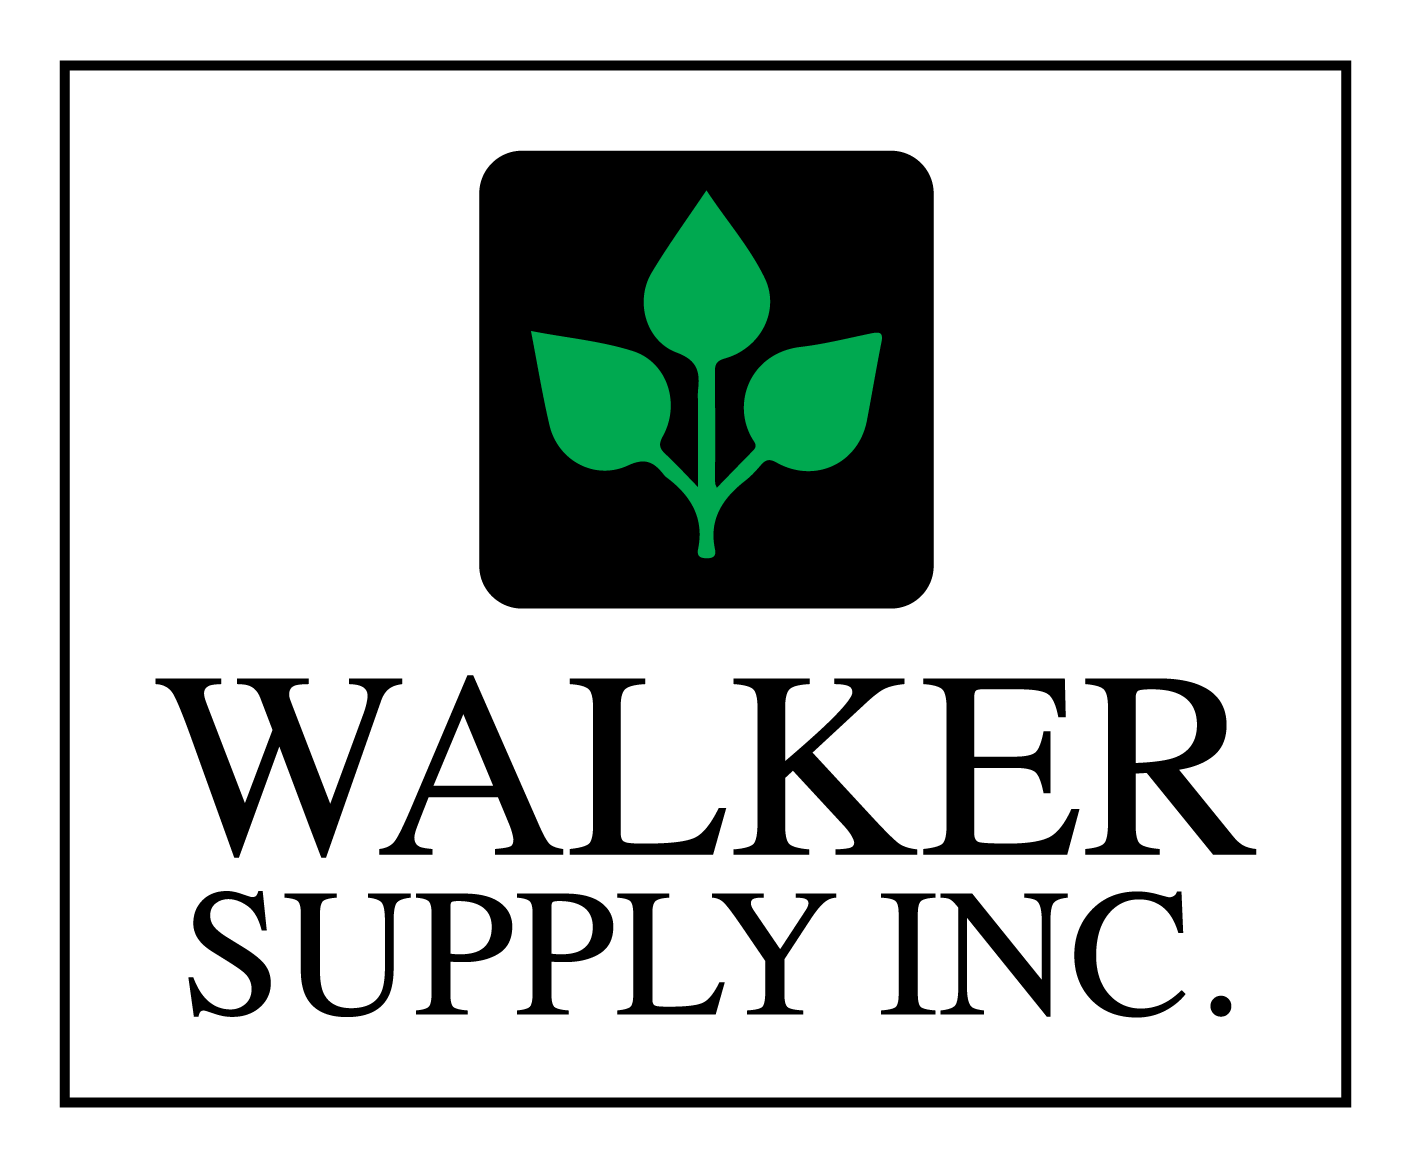 wsi welcomes new territory manager mike quigney walker supply inc wsi welcomes new territory manager mike quigney